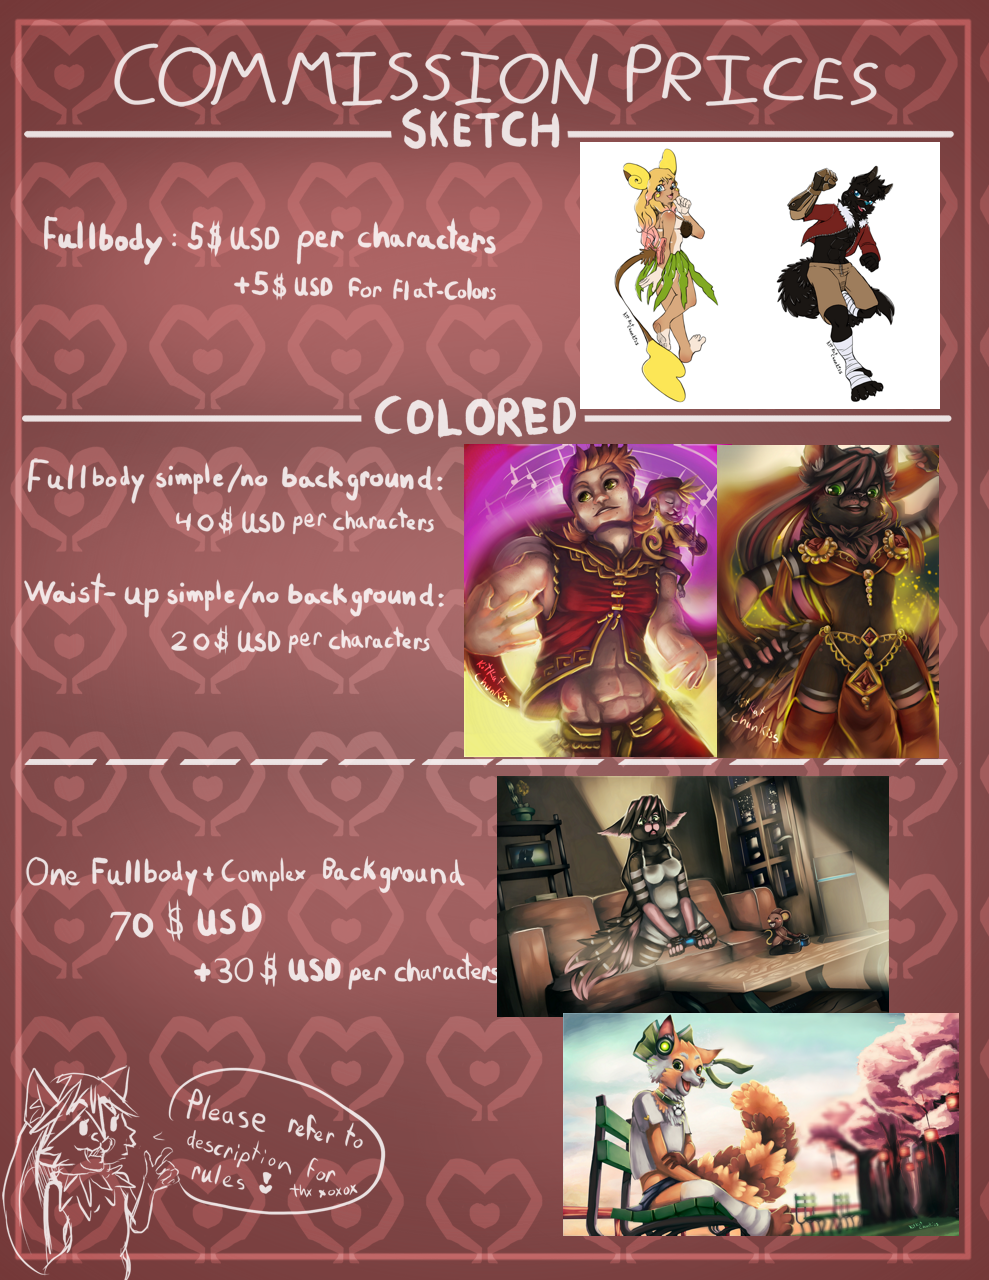 Kit's Commission Prices